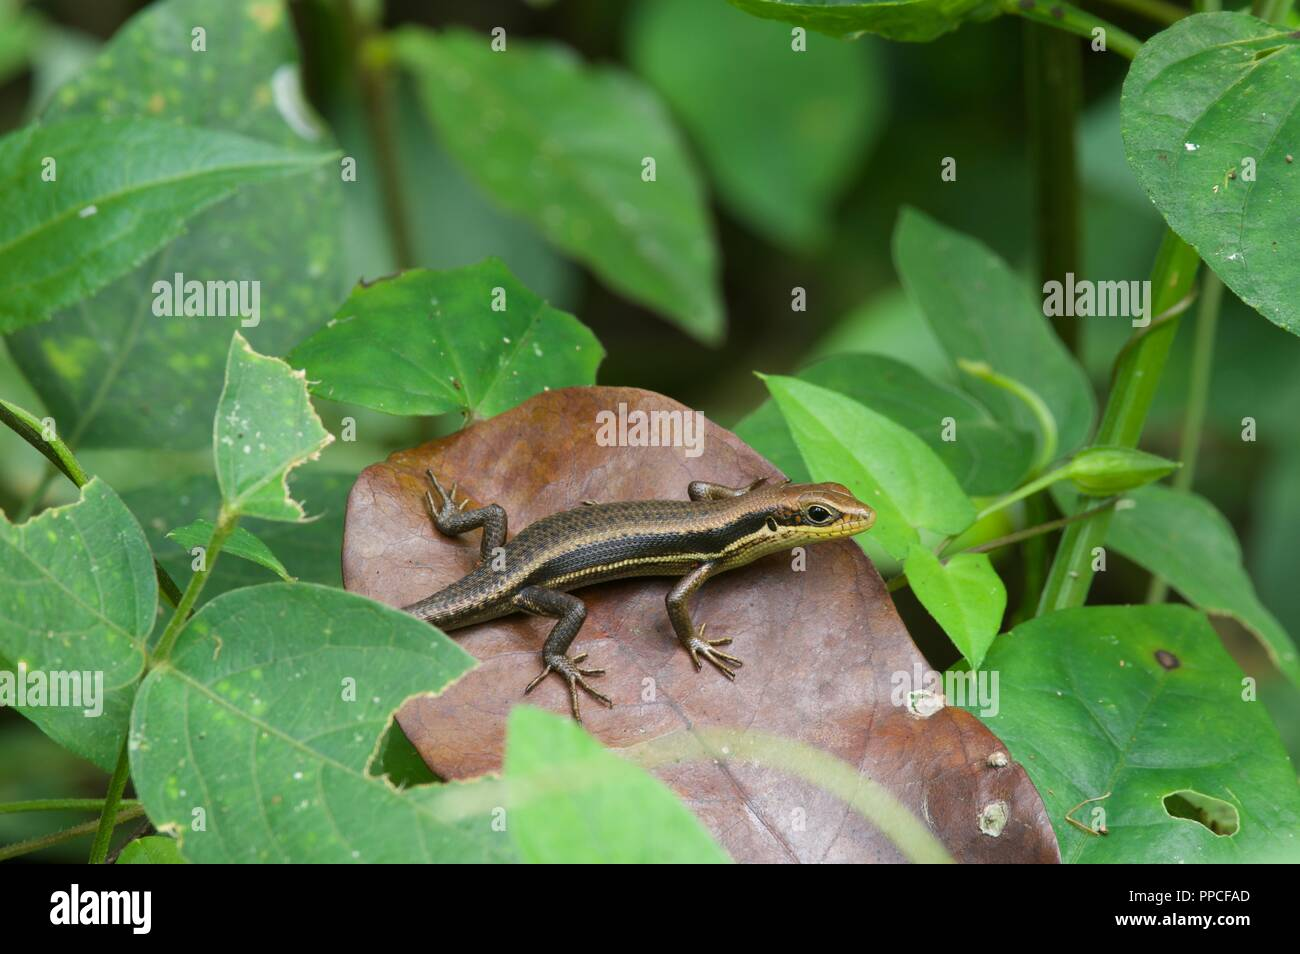 A small skink (Trachylepis sp) in vegetation at Bobiri Forest Reserve, Ghana, West Africa - Stock Image